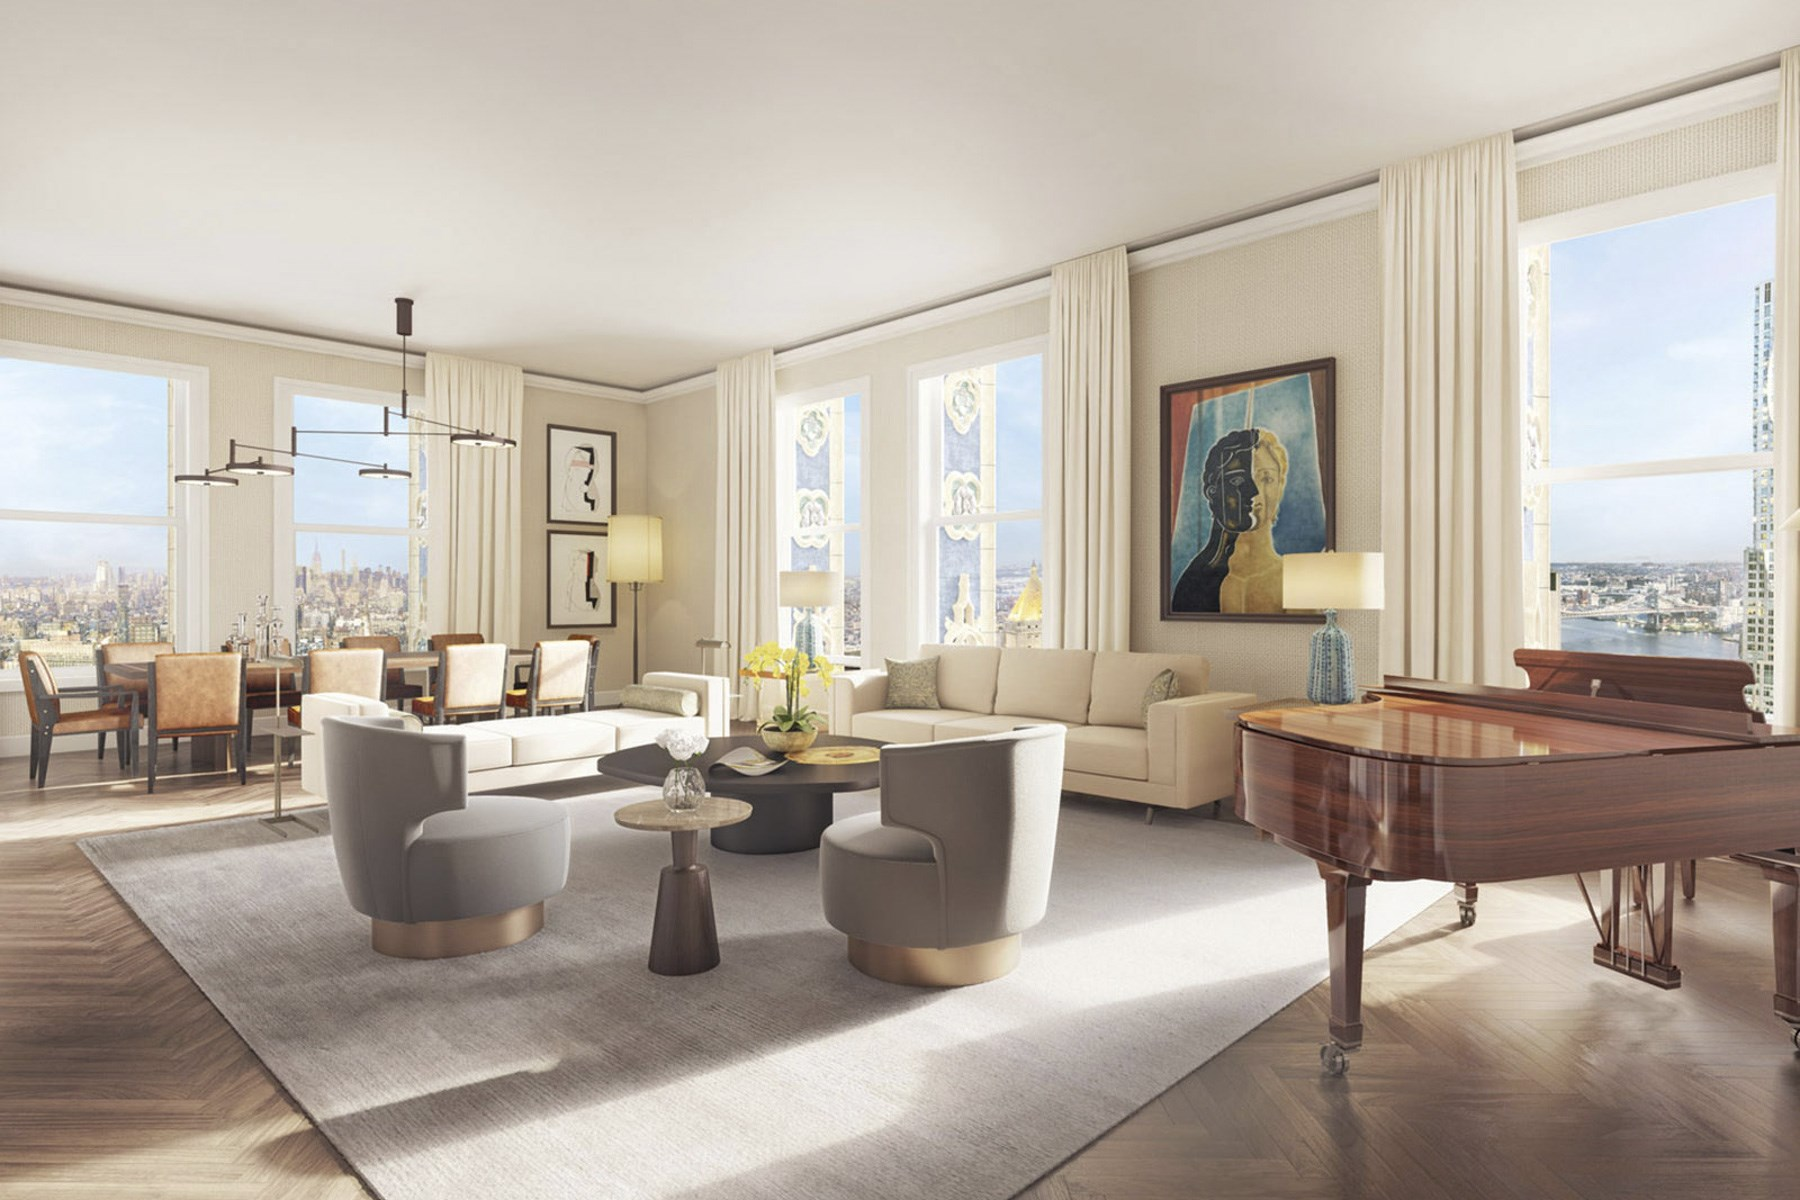 Condominio per Vendita alle ore The Woolworth Tower Residences - 43A 2 Park Place Apt 43A Tribeca, New York, New York, 10007 Stati Uniti